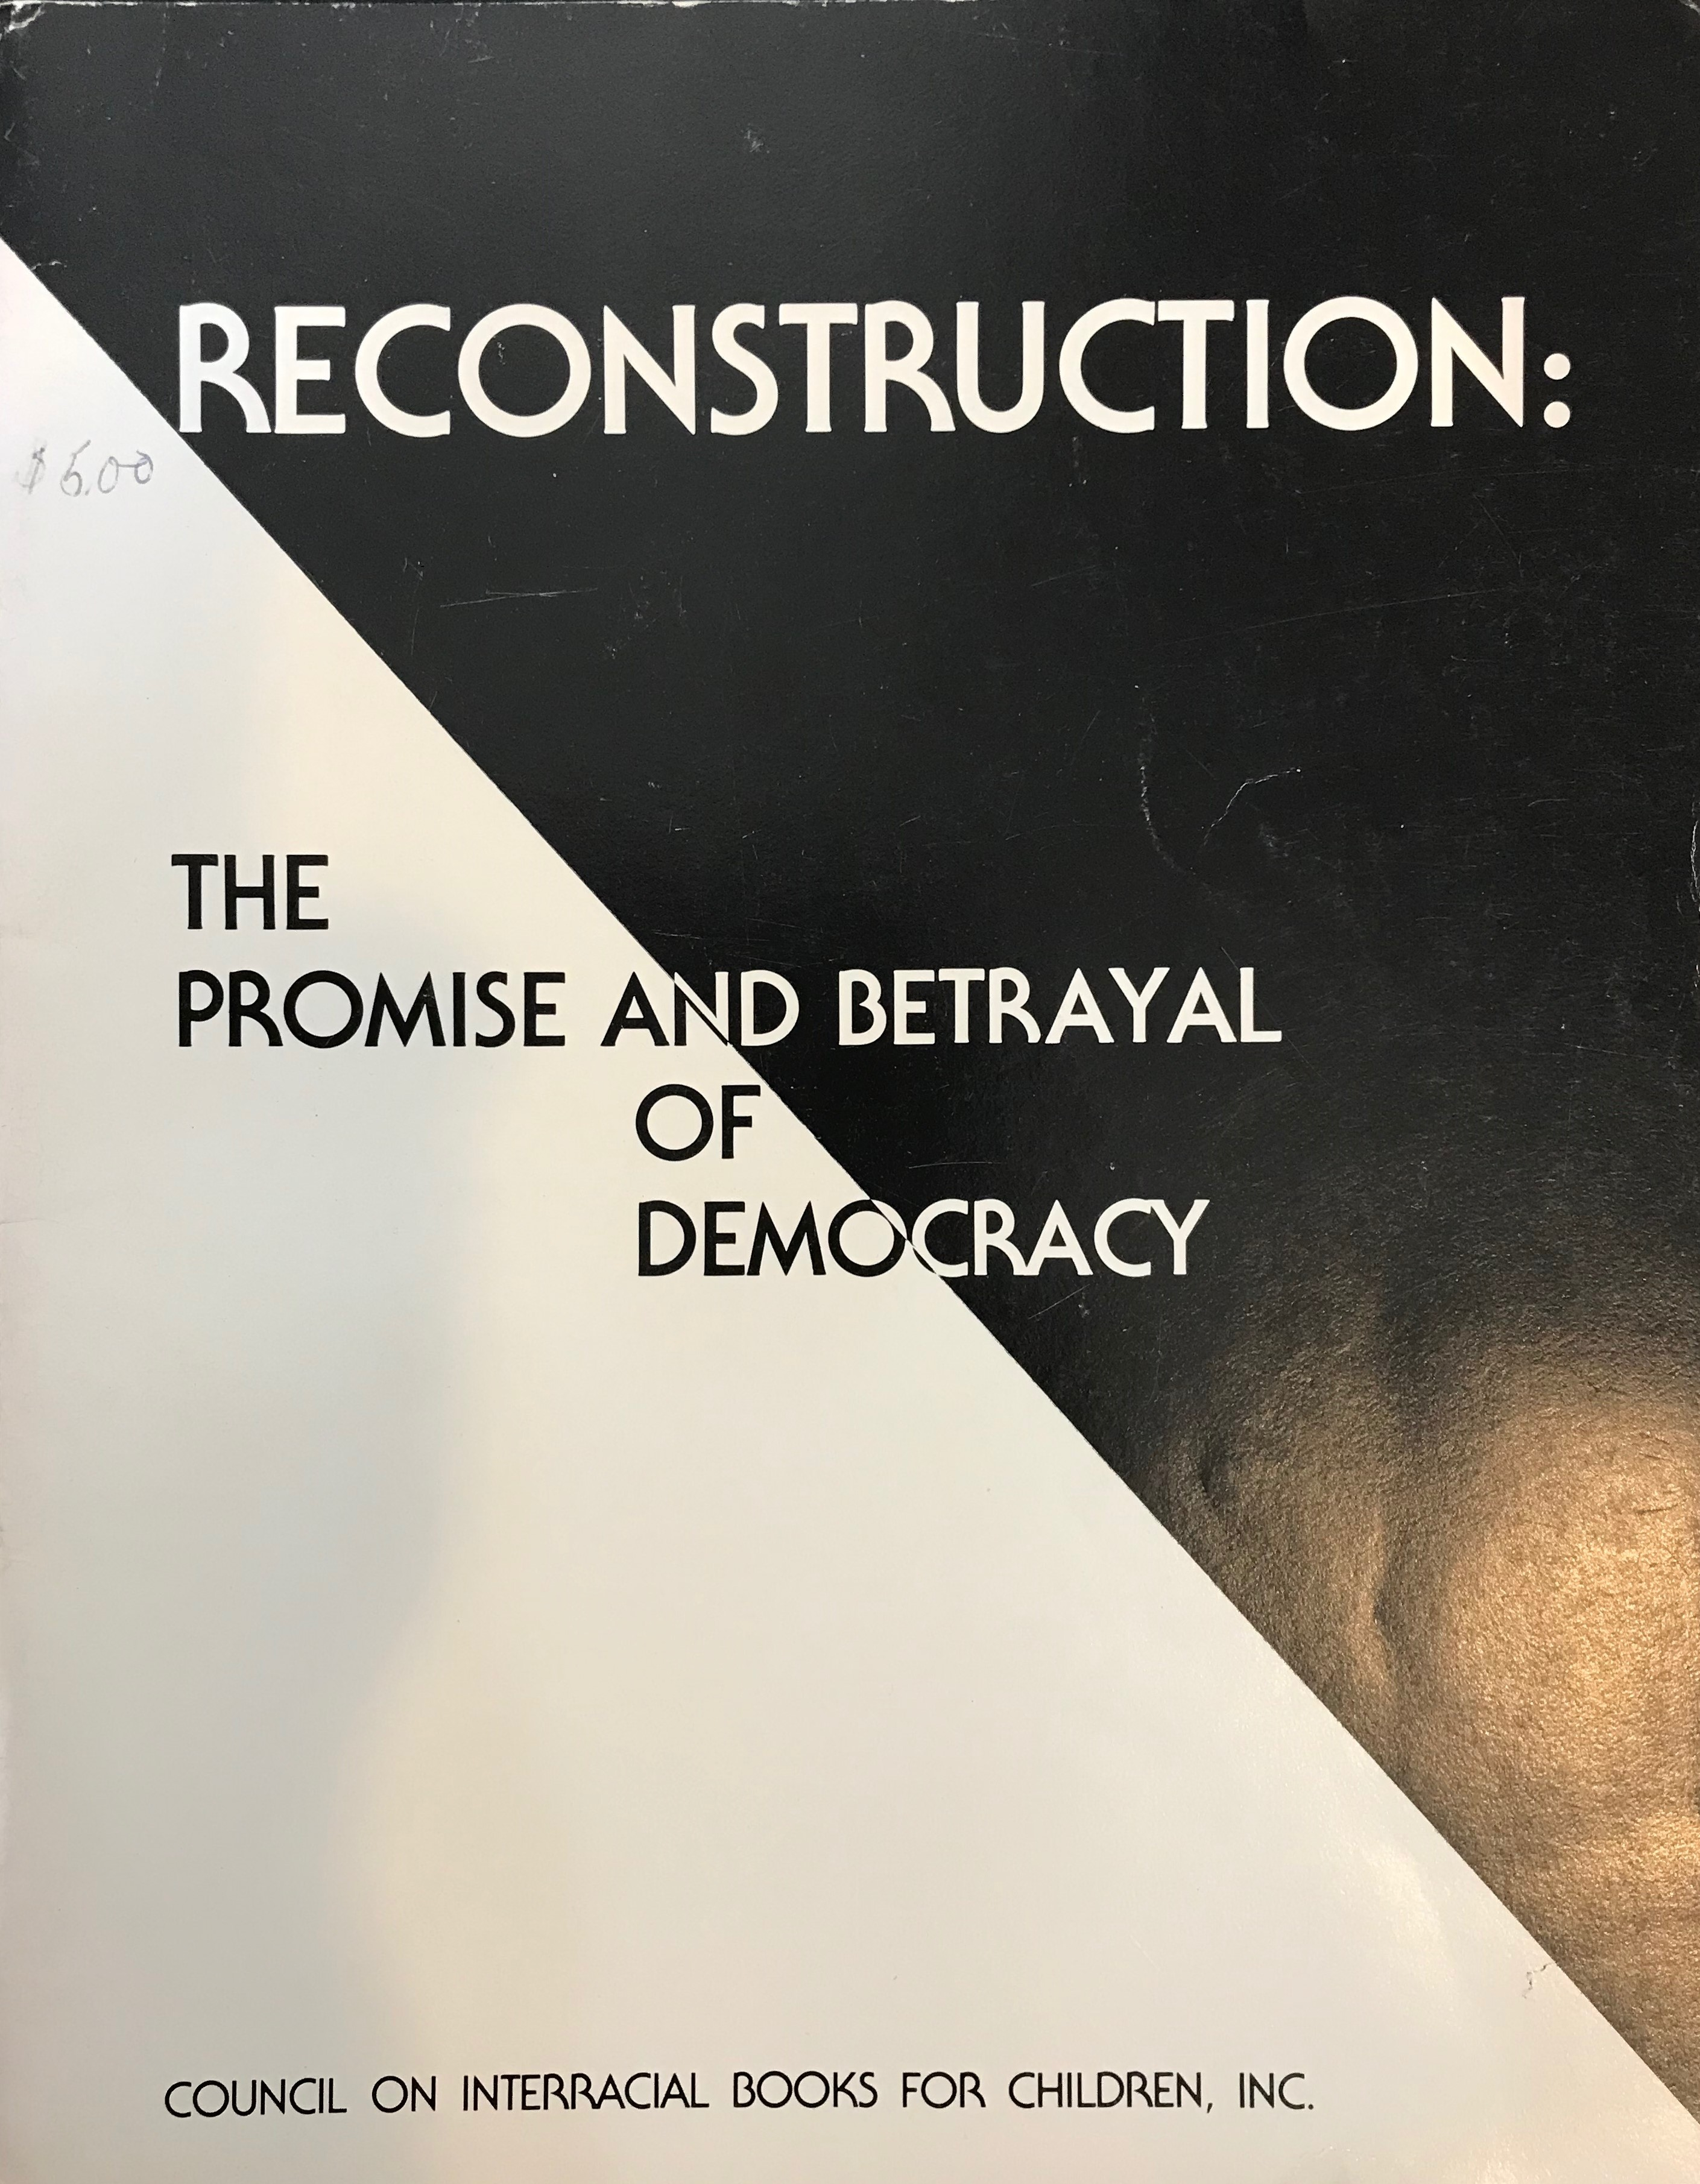 Reconstruction: The Promise and Betrayal of Democracy (Book Cover) | Zinn Education Project